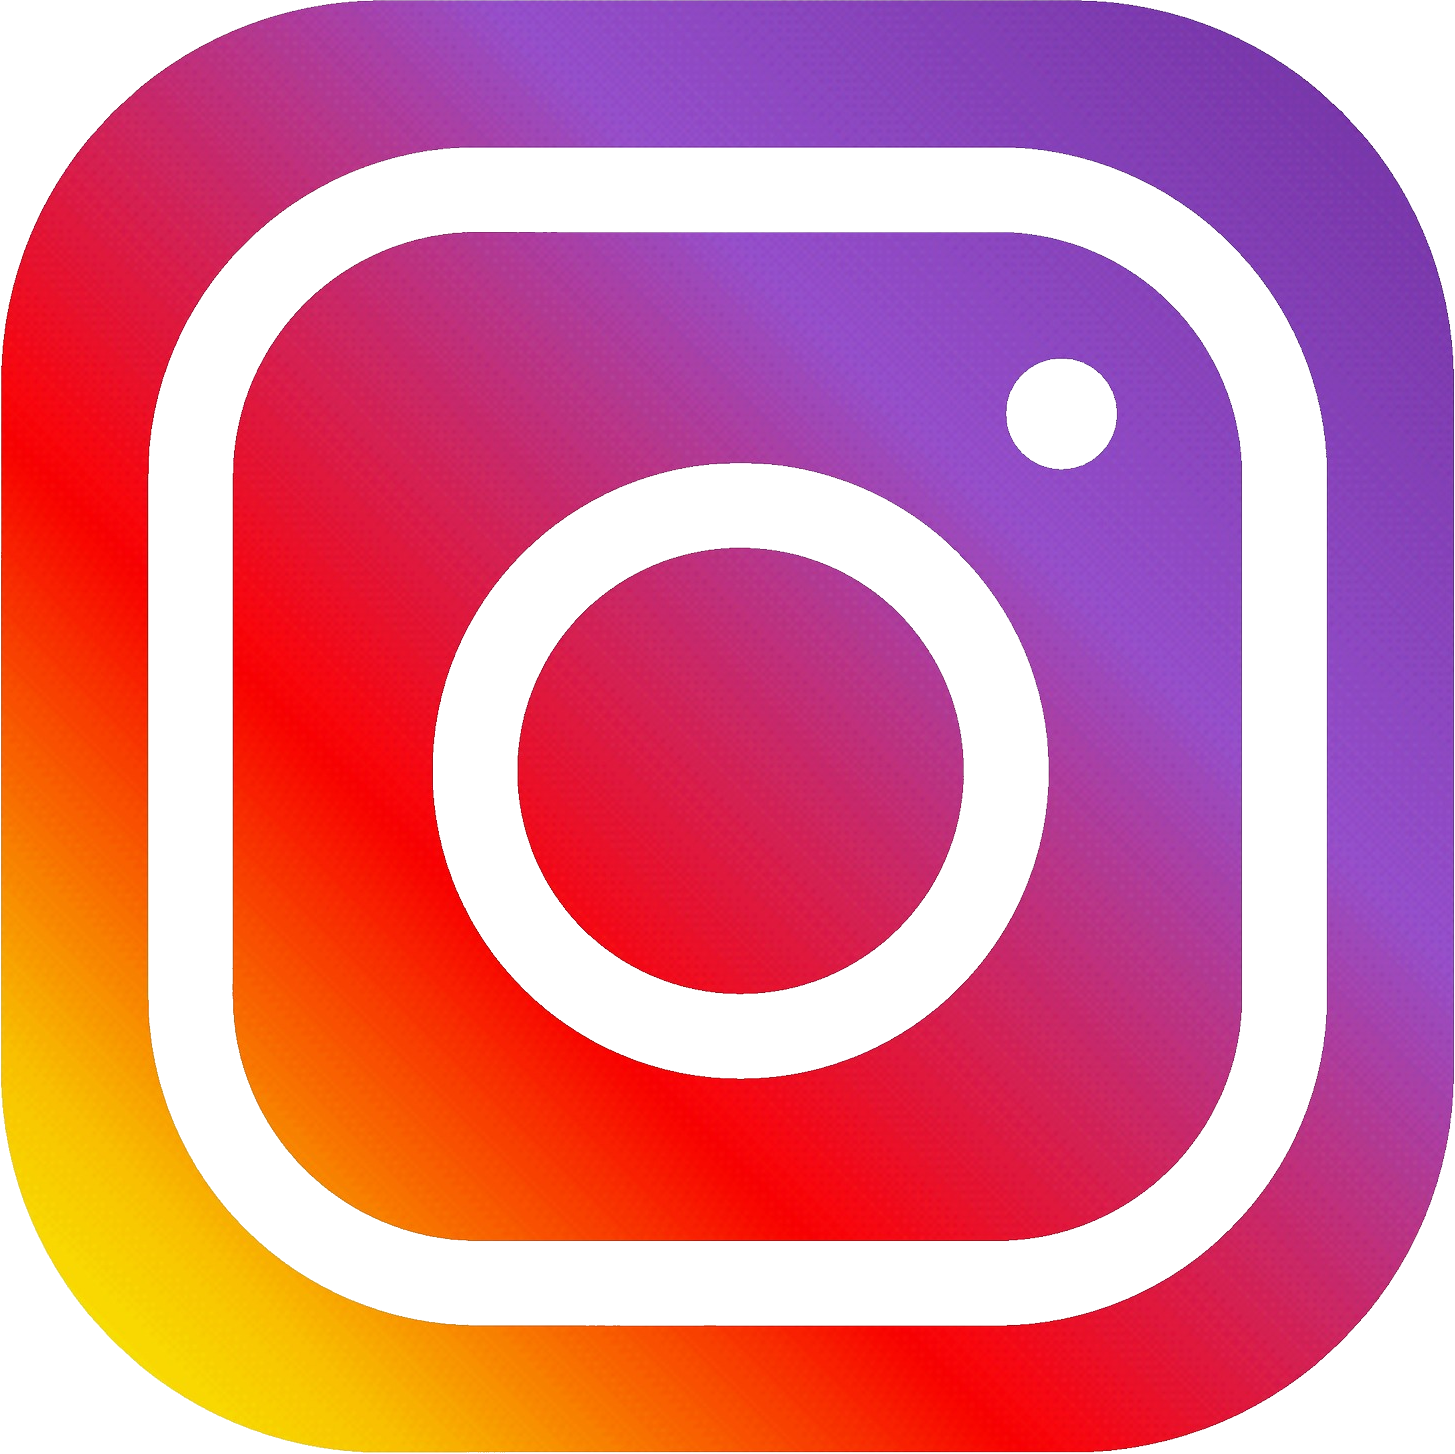 Internovations works with Instagram Business